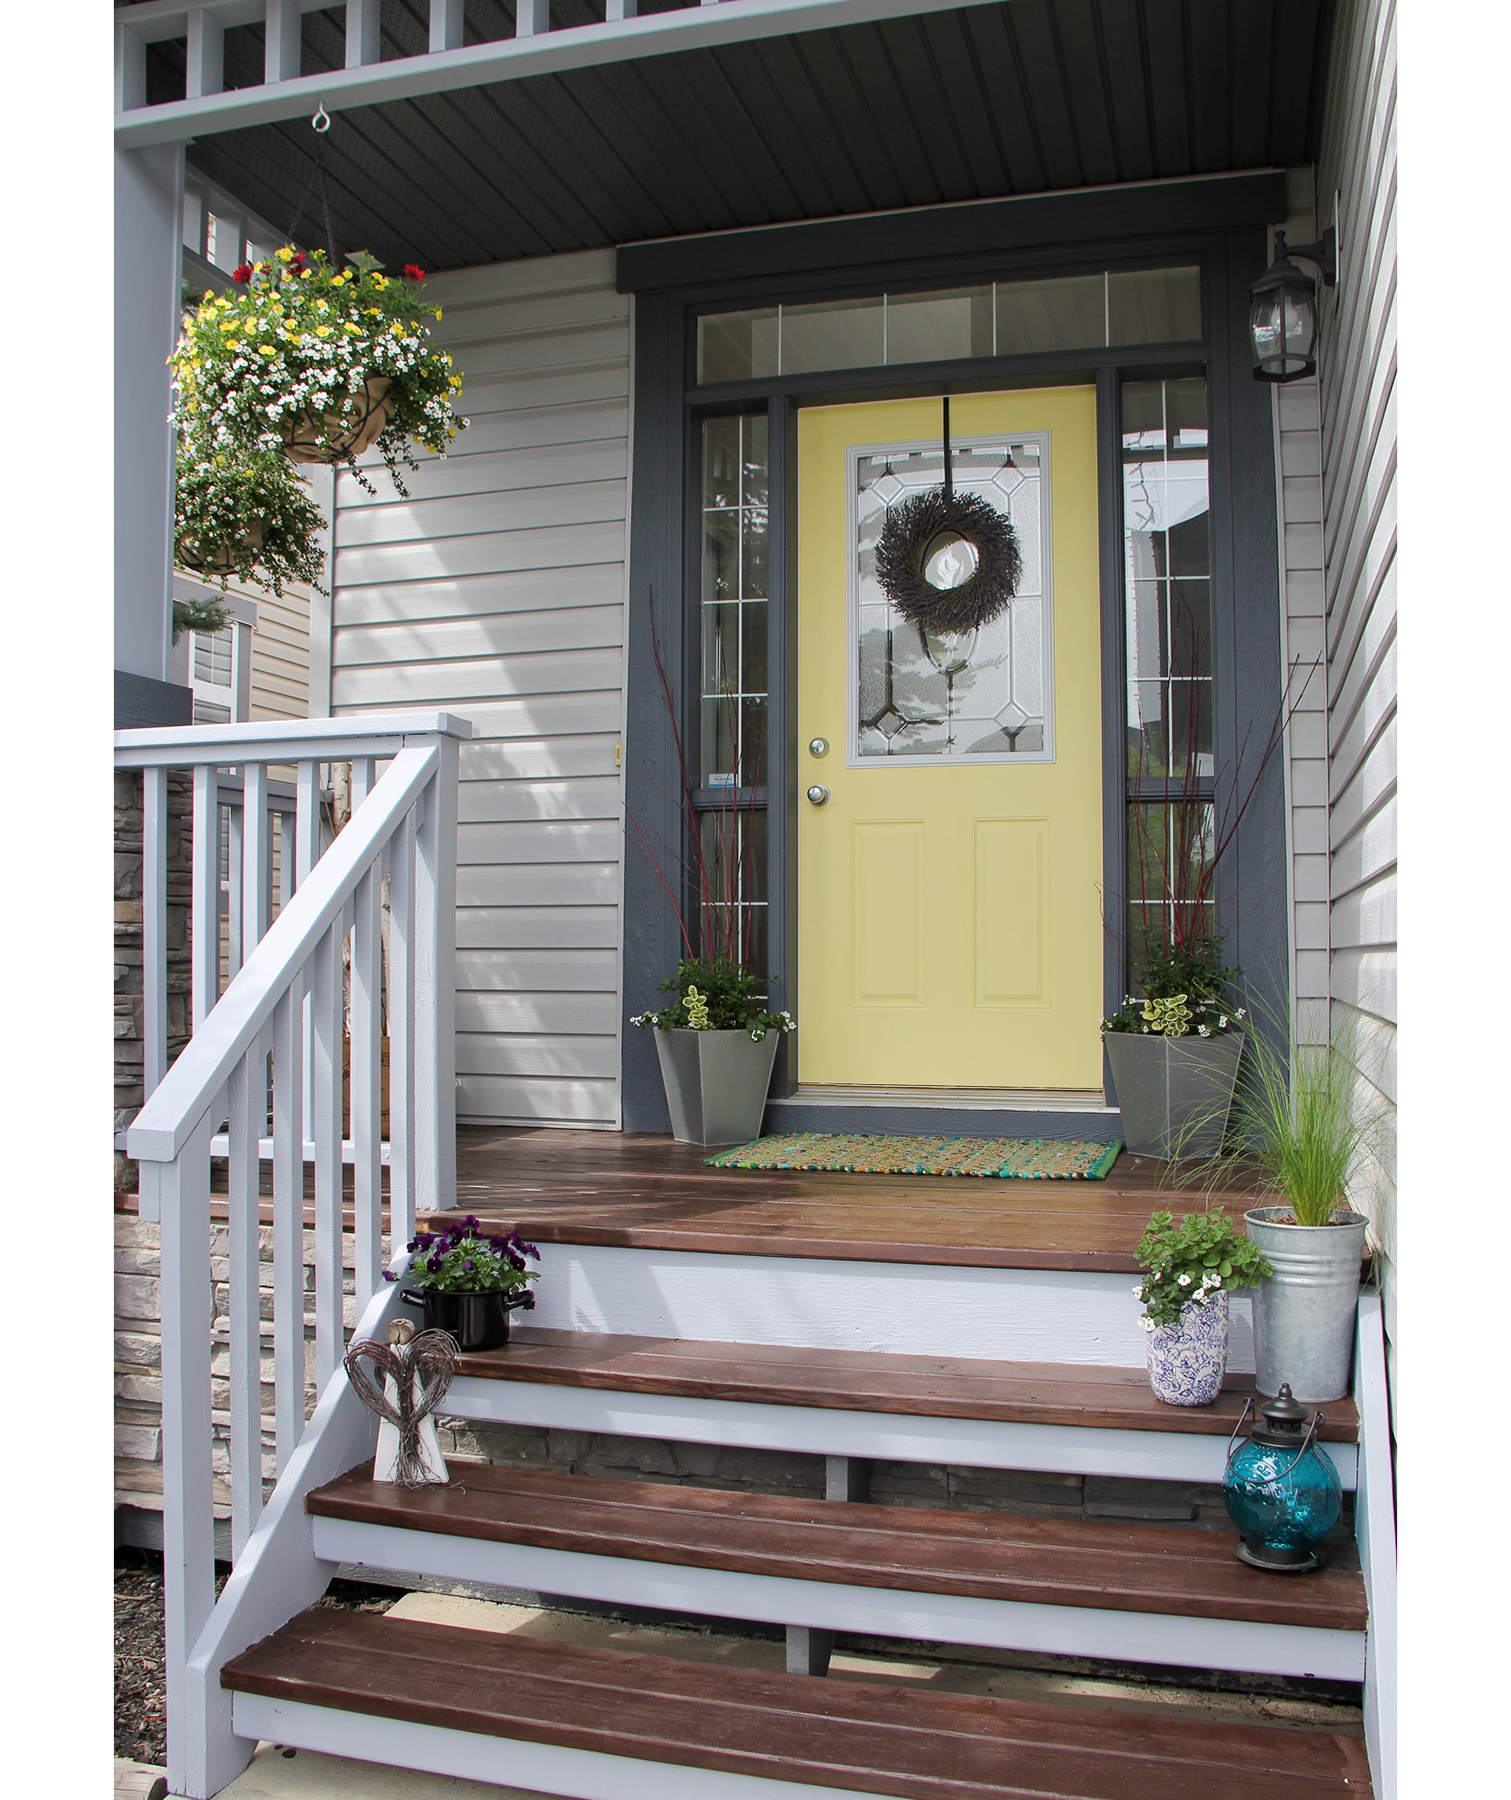 Frugal Fix: Brighten Up the Entrance